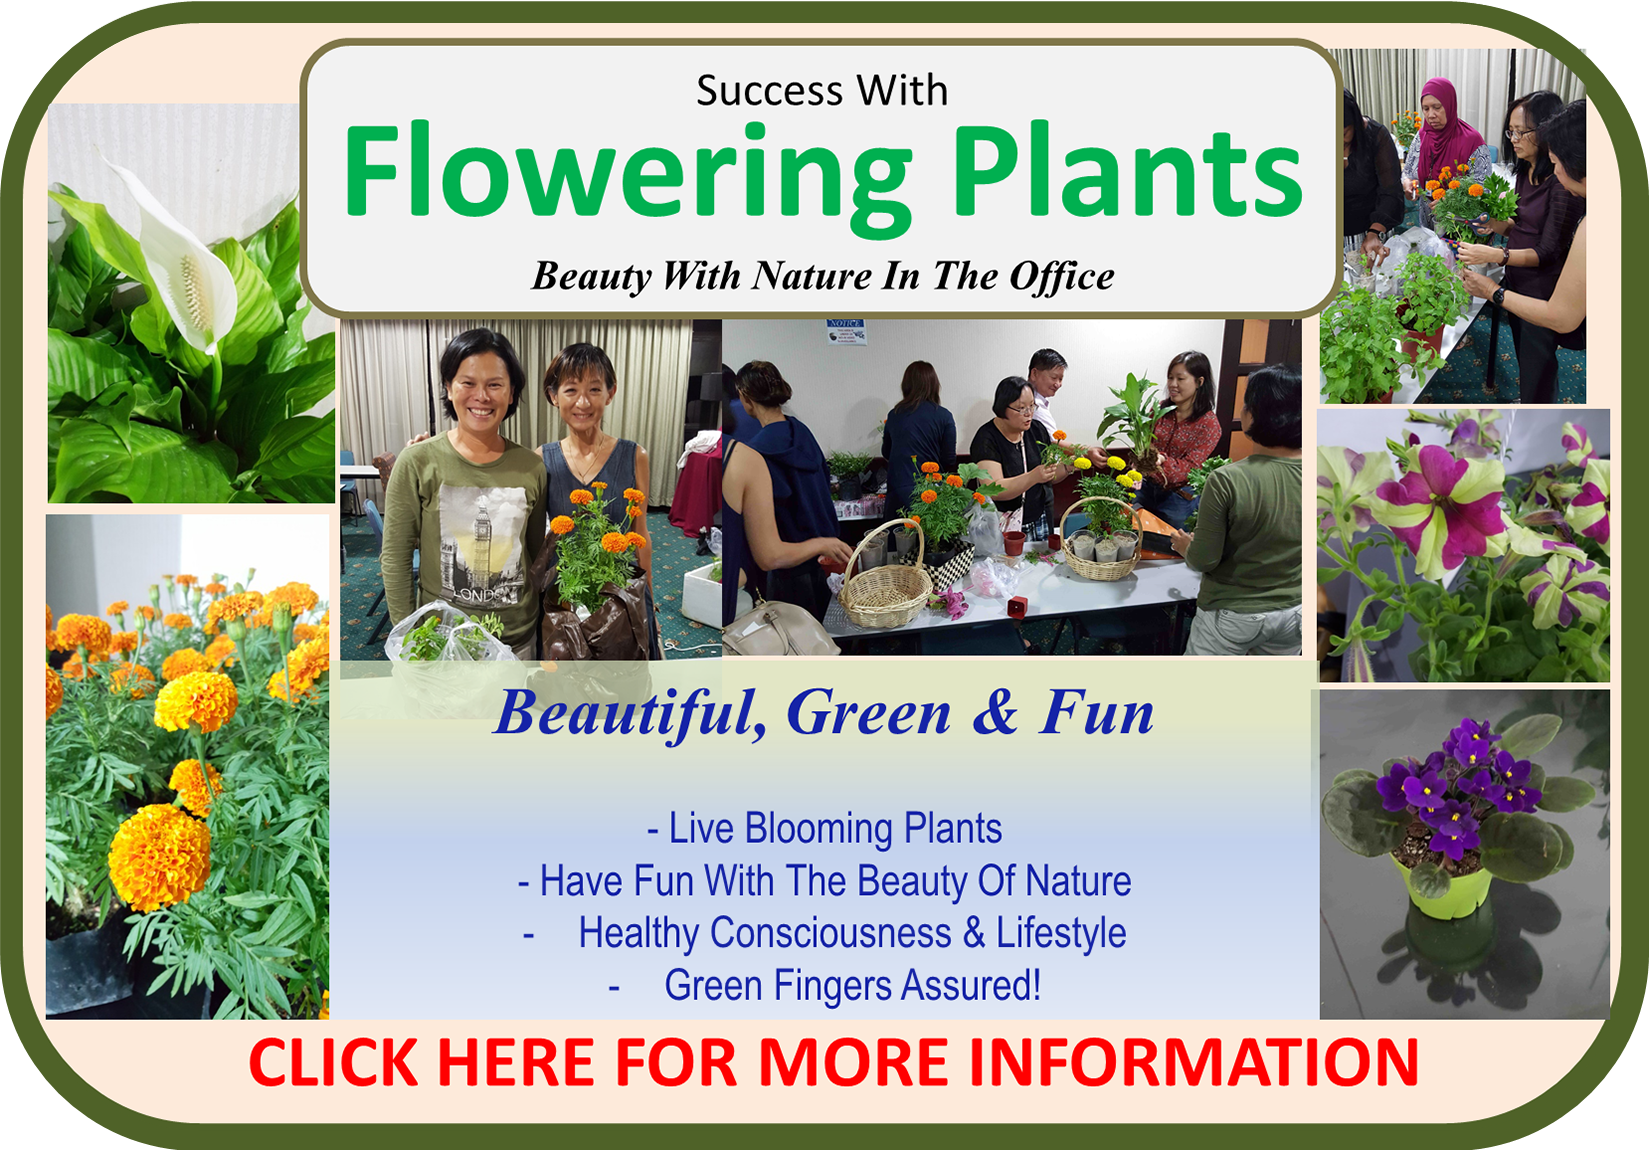 Success With Flowering Plants